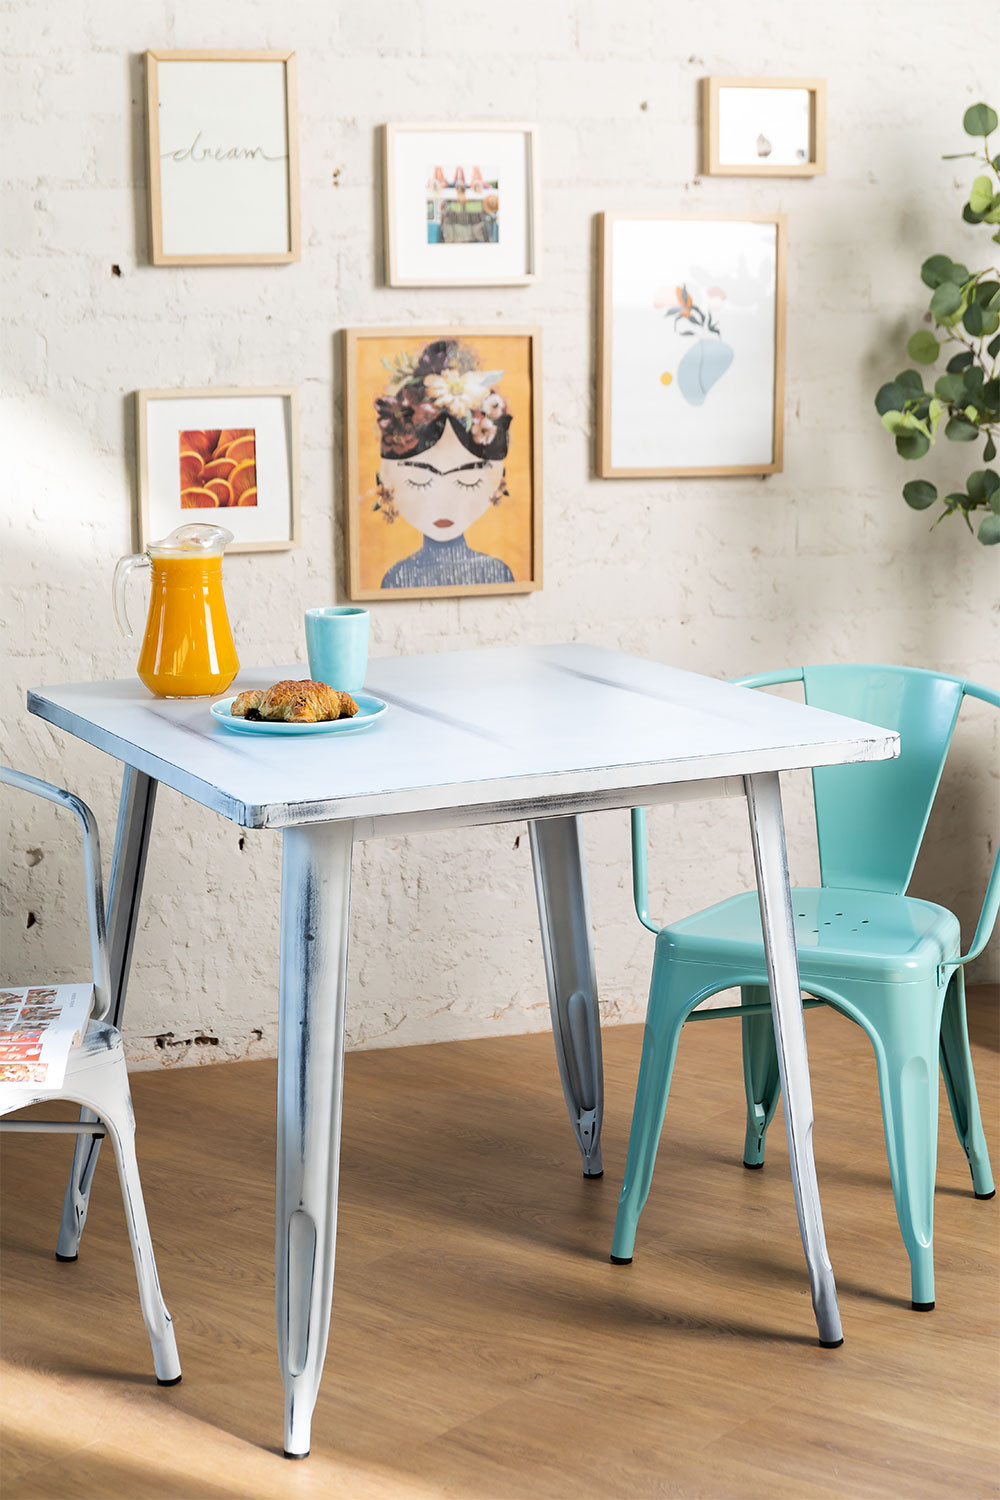 Vintage LIX Table (80x80), gallery image 1